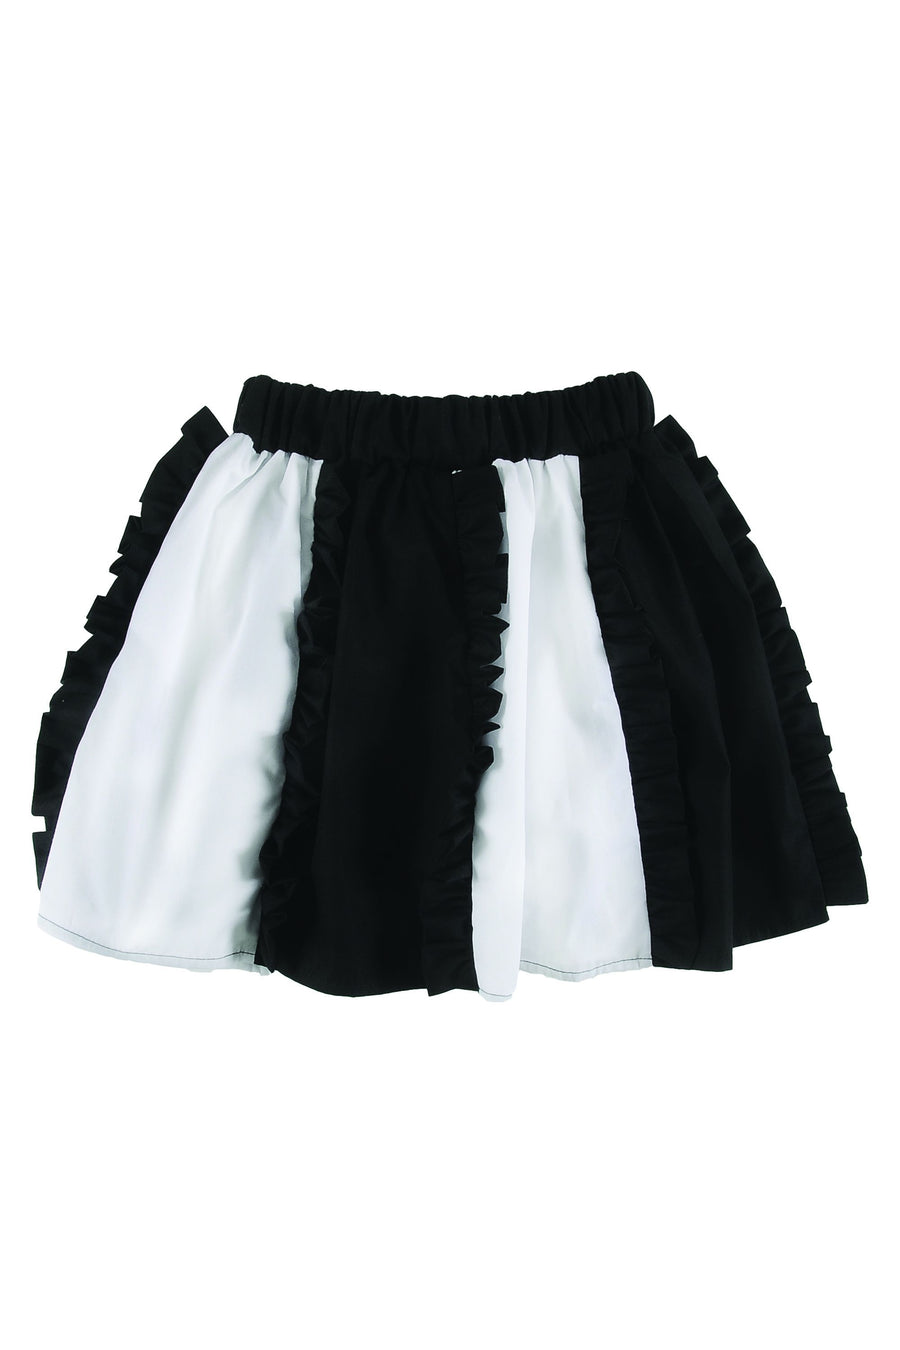 Merry Ruffle Skirt by LOUD